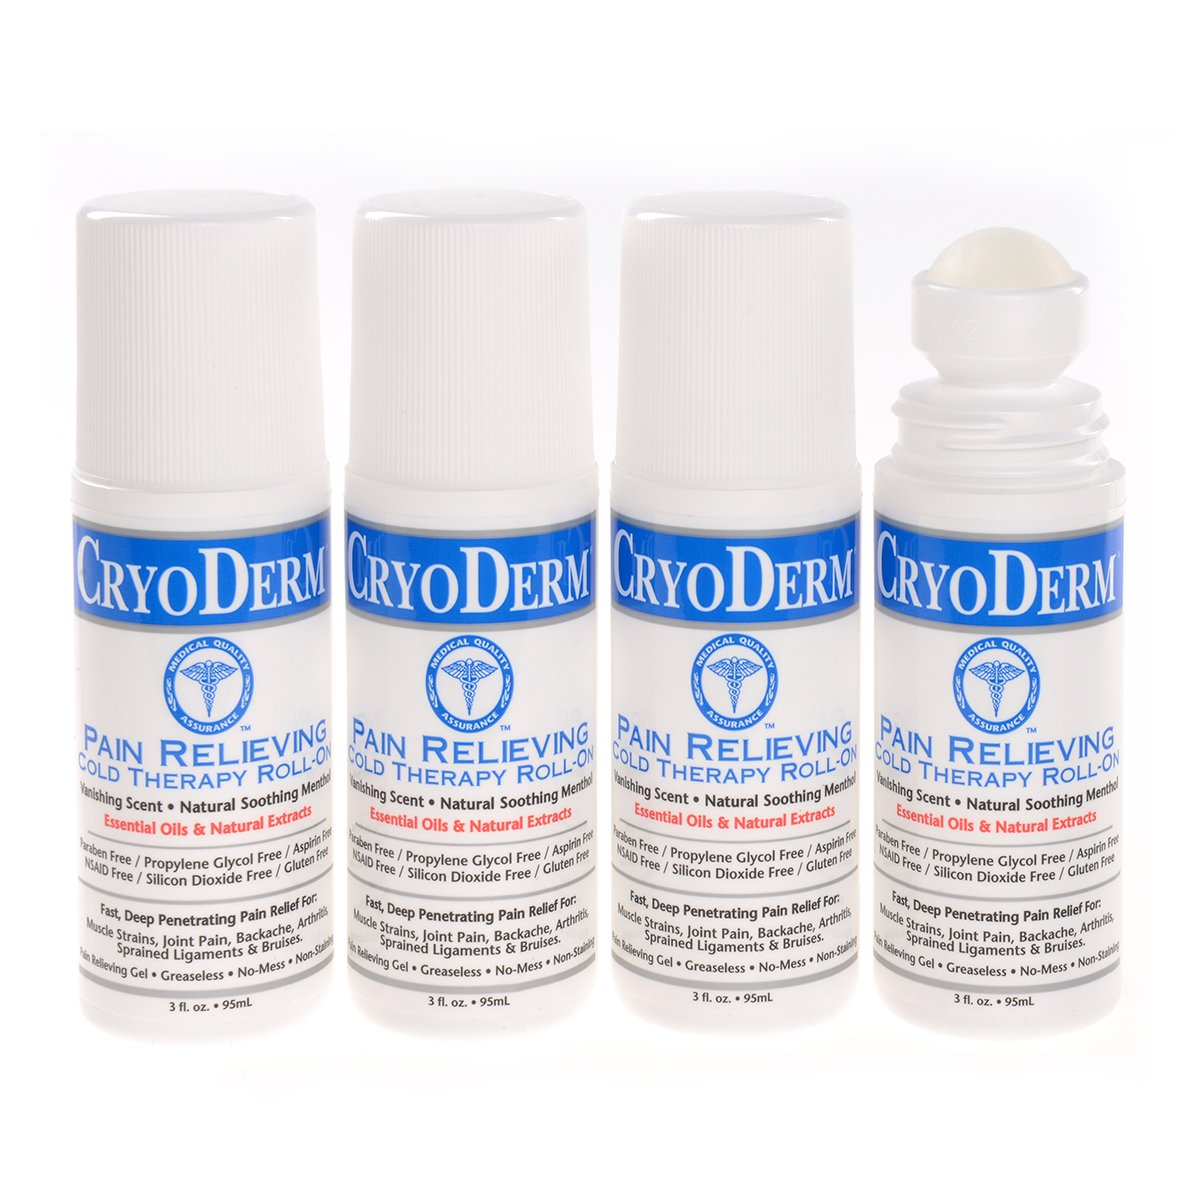 Cryoderm D-Roll-On-3oz-4 Cold Roll-On 3 oz. (Pack of 4) by Cryoderm